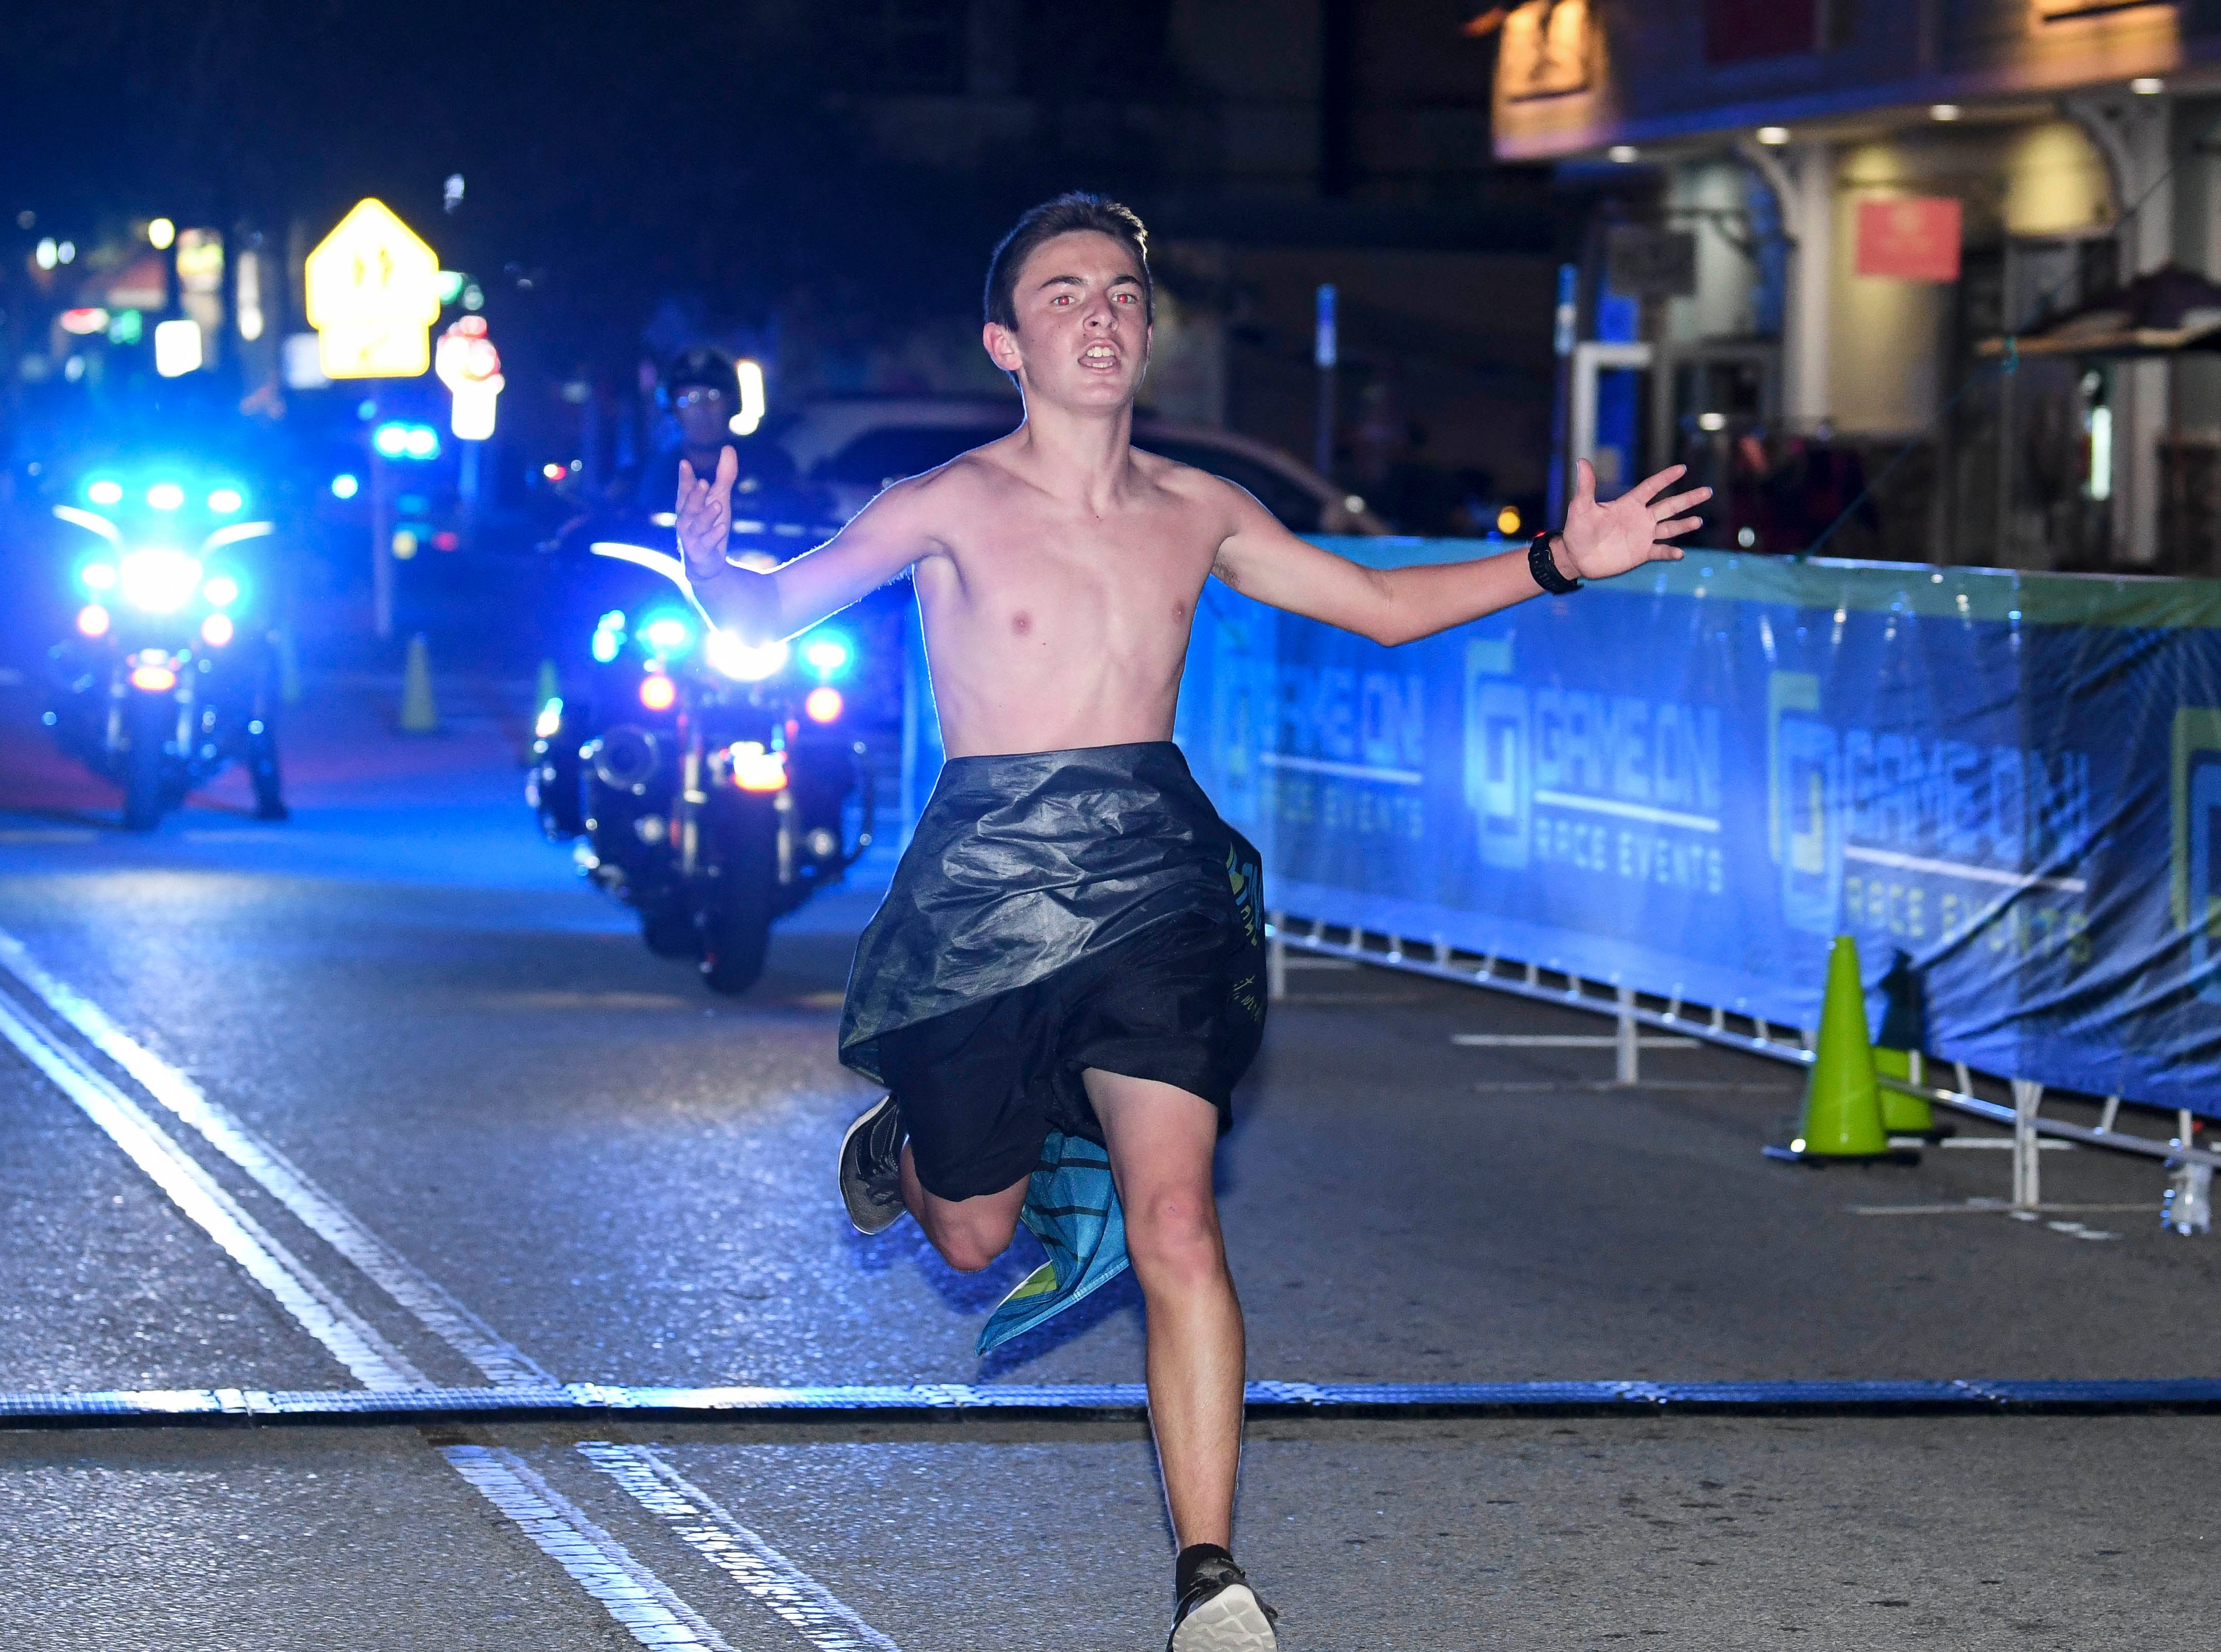 Logan Chapman of Cocoa is the overall winner of  the inaugural Game On Run for Responders 5K Run/Walk in Cocoa Village. Proceeds from the event benefit Survive First.